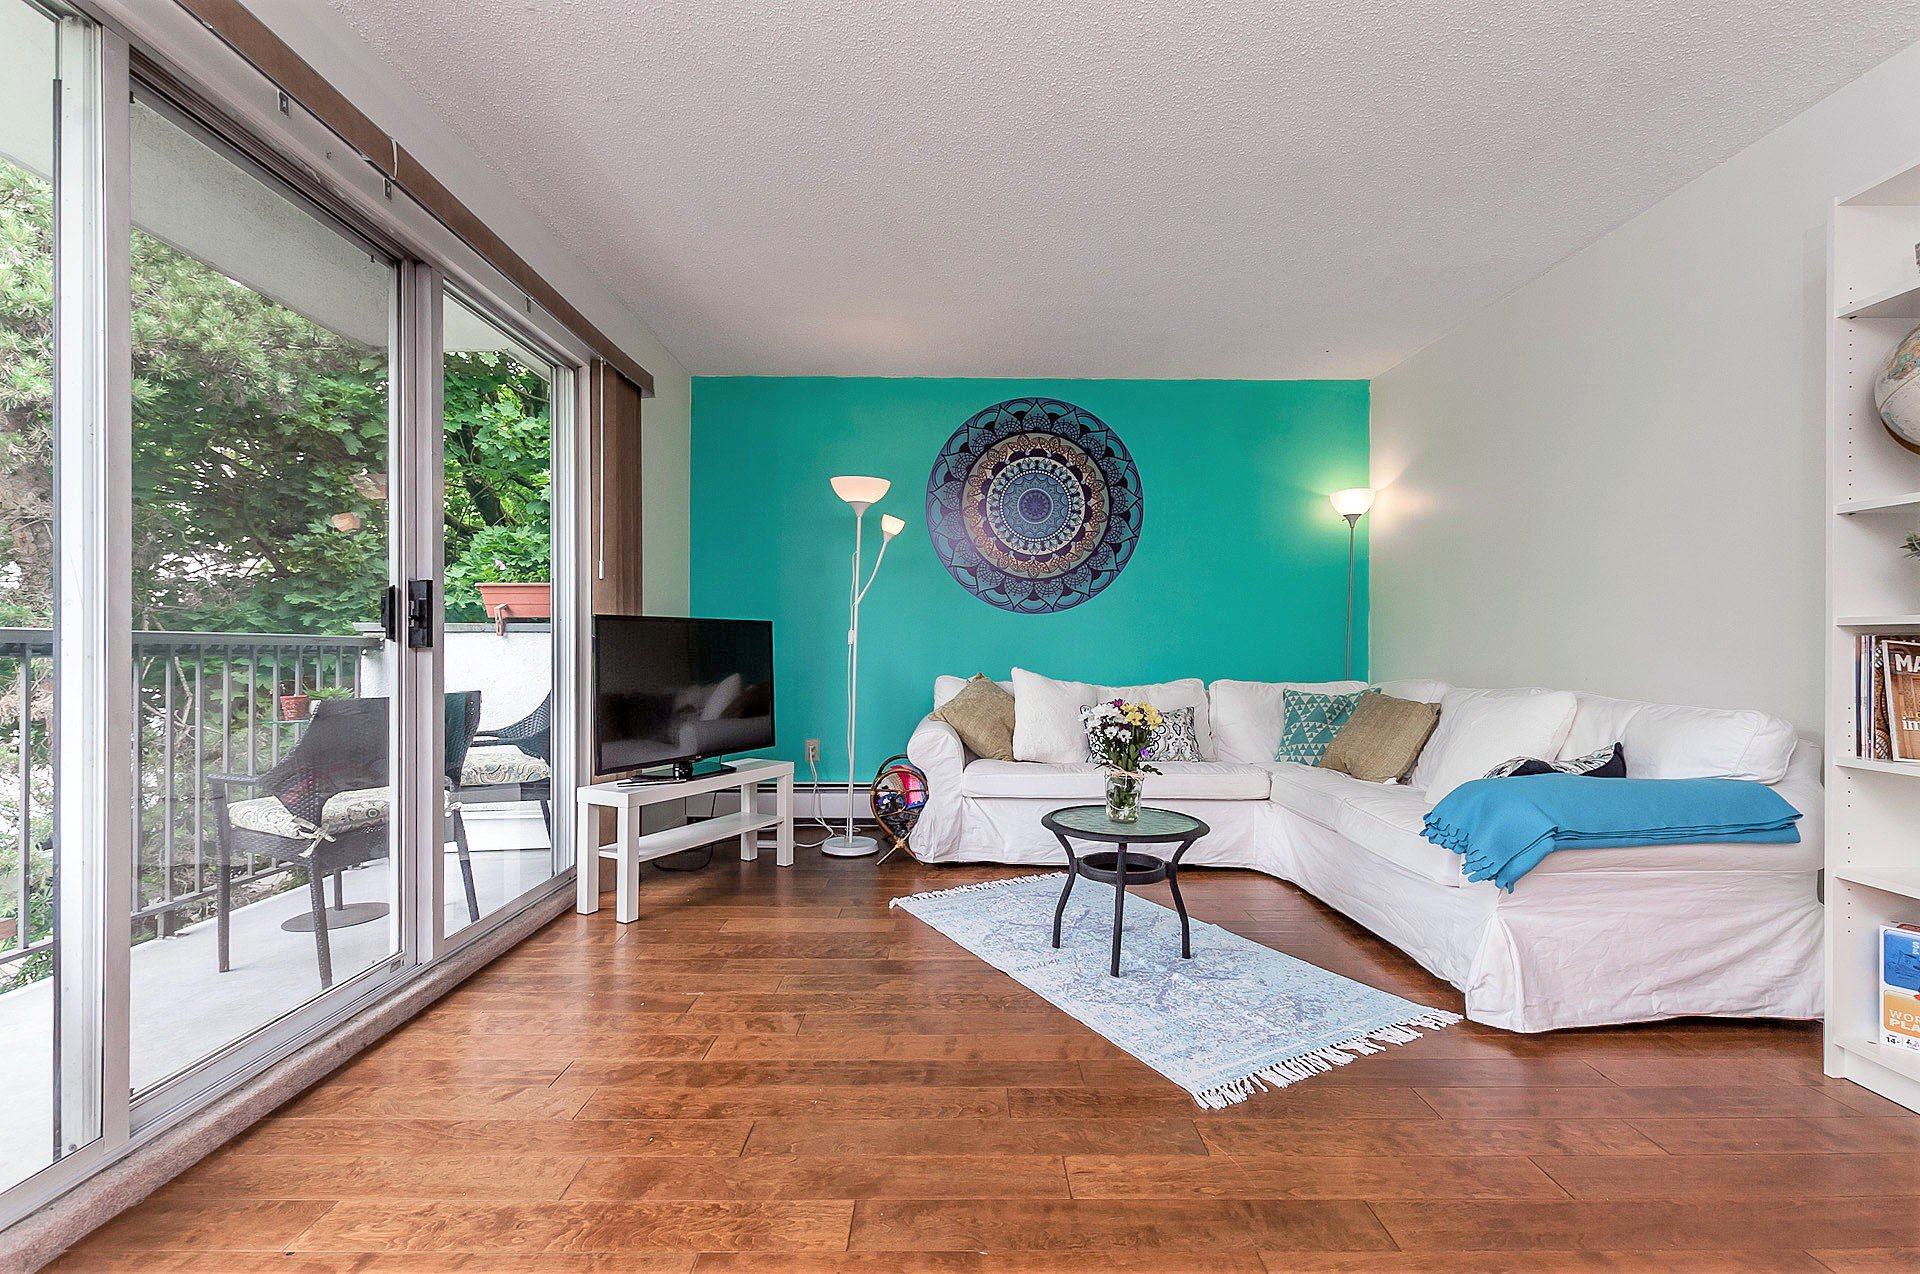 """Main Photo: 401 428 AGNES Street in New Westminster: Downtown NW Condo for sale in """"SHANLEY MANOR"""" : MLS®# R2275963"""